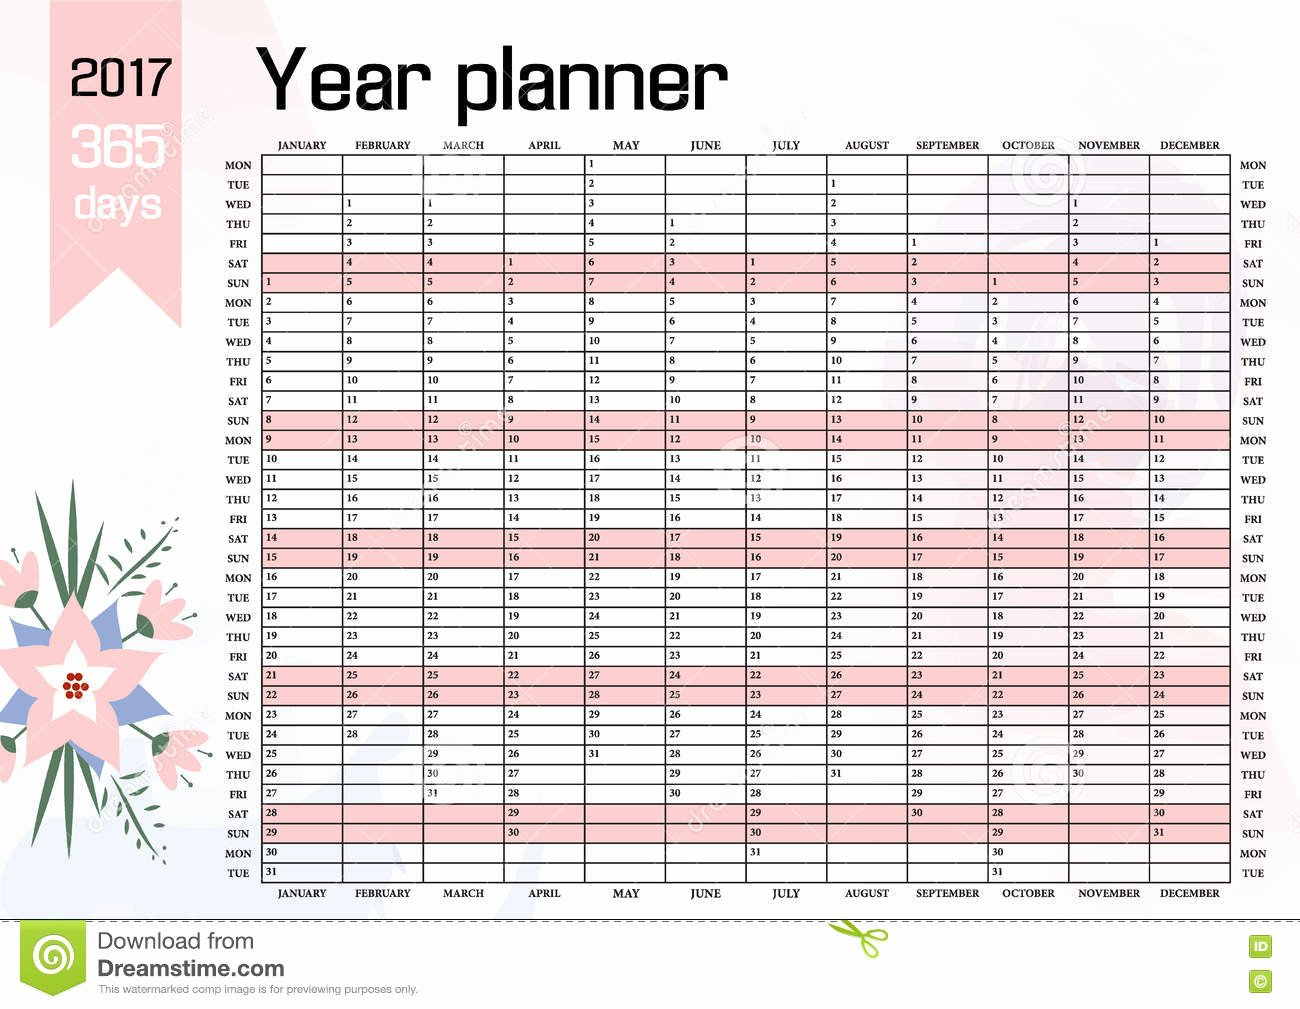 Four Year Plan Template Excel Elegant Year Wall Planner Plan Out Your whole with This 2017